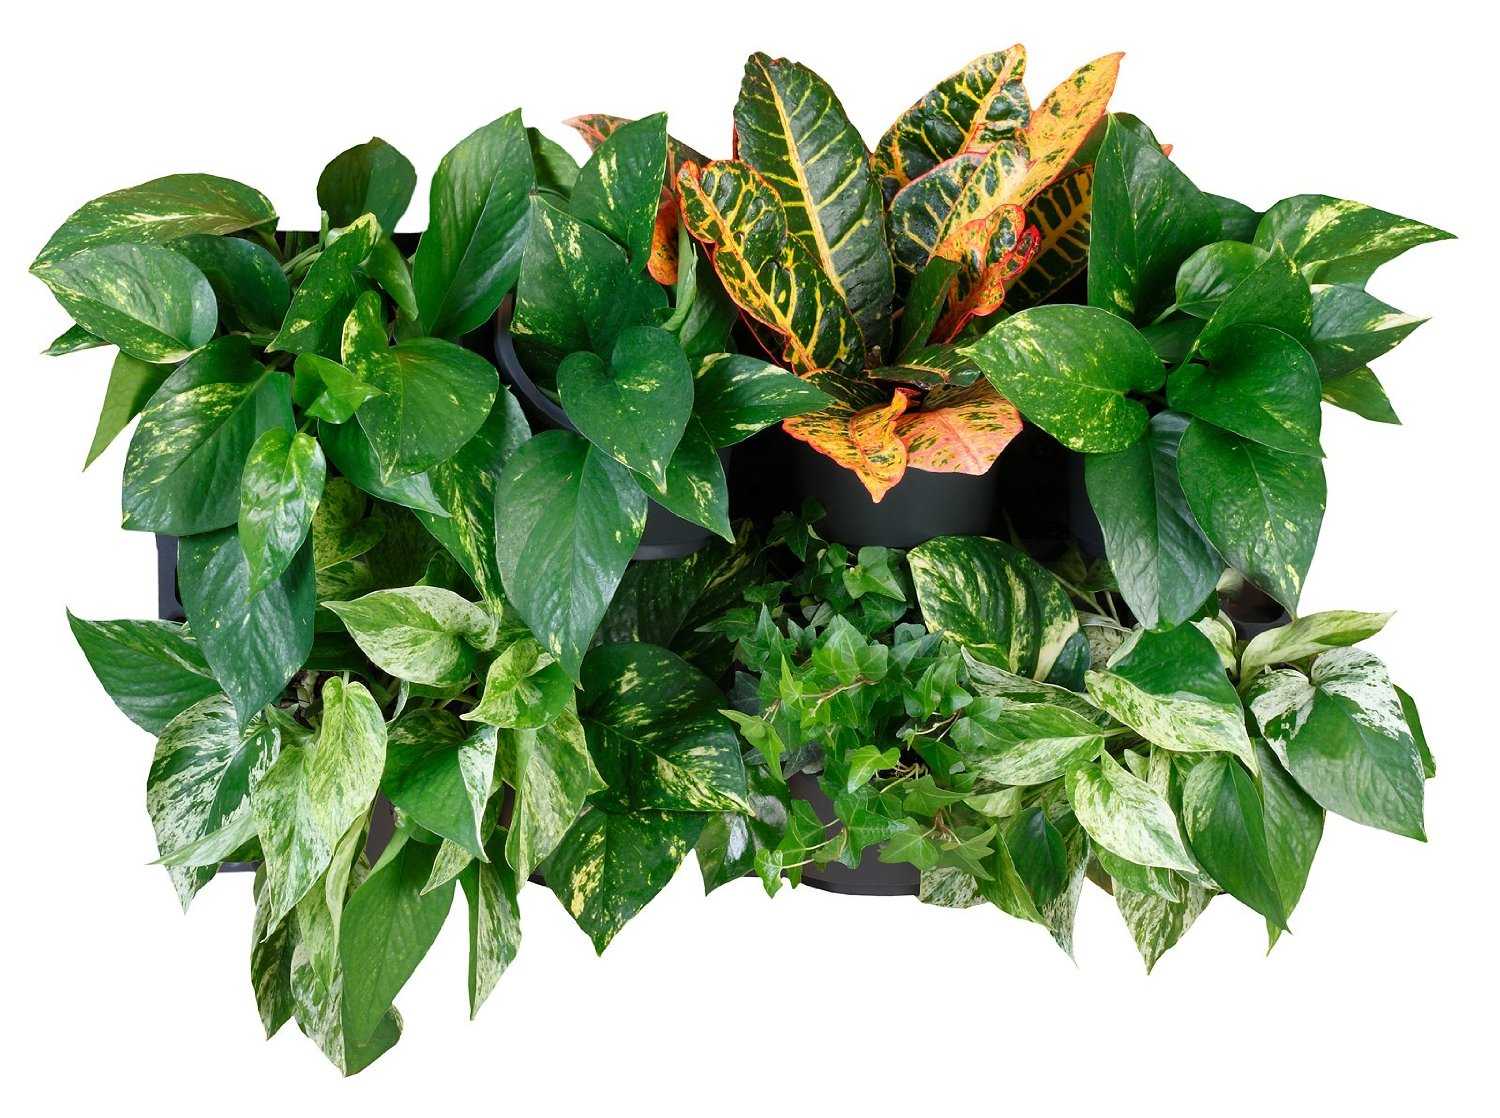 60 Vertical Garden Kit With Built In Irrigation